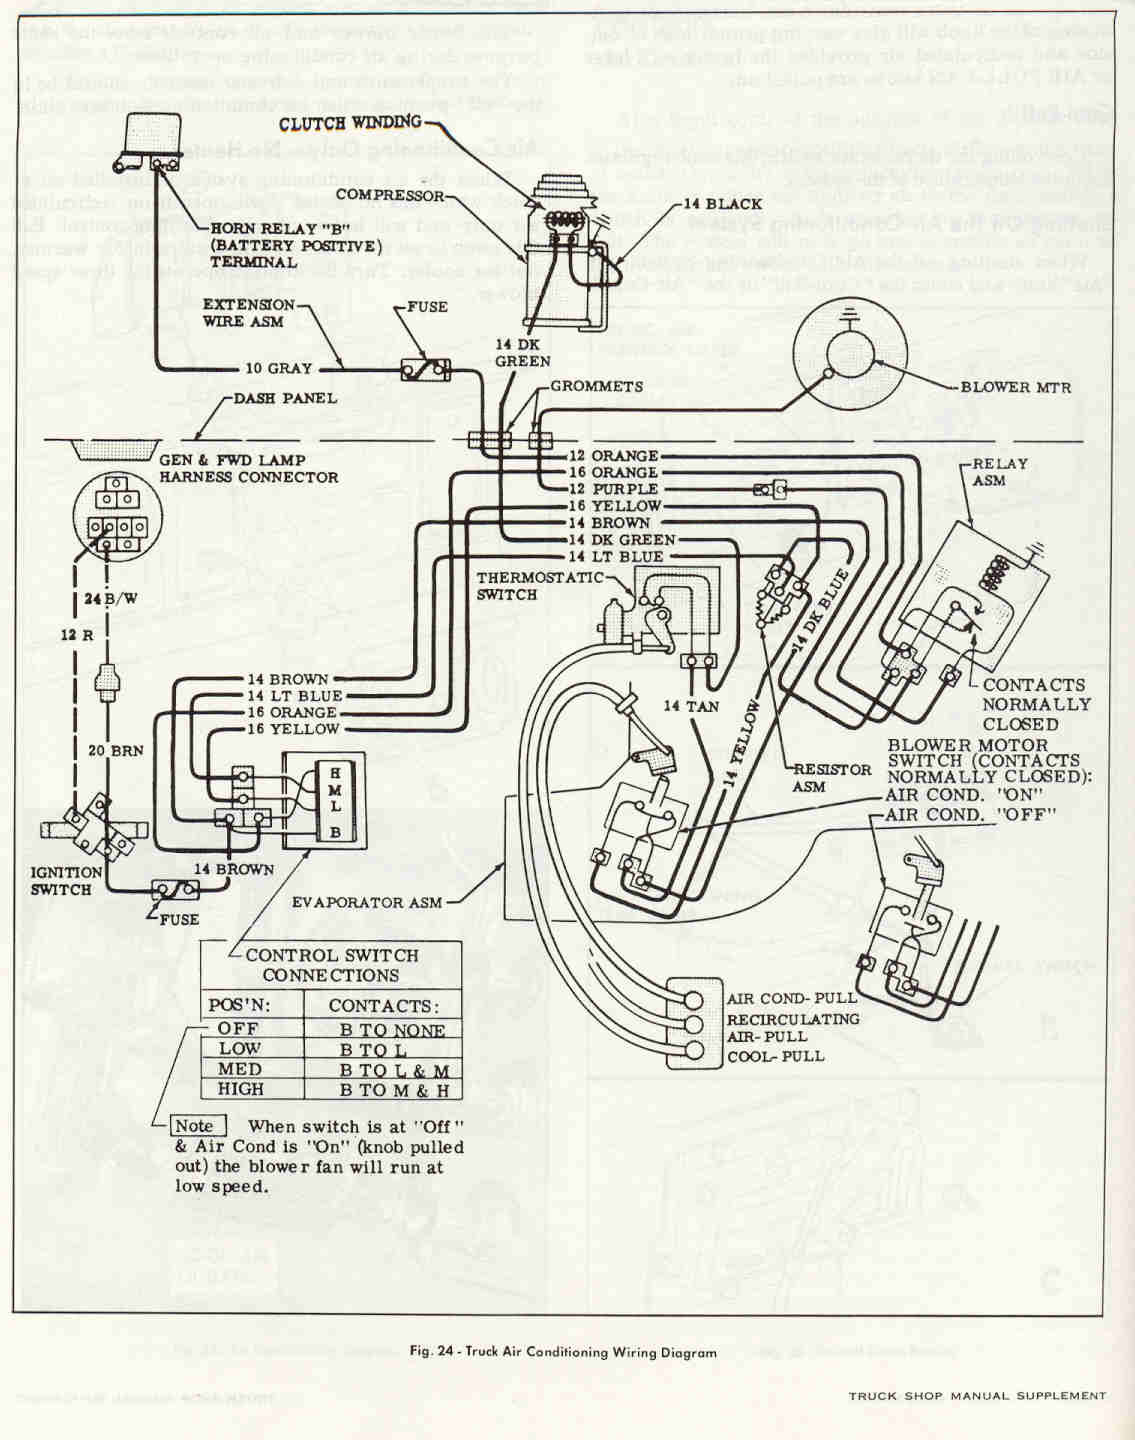 1970 Chevy C10 Blower Motor Wiring Diagram Wiring Diagram Complete Complete Lionsclubviterbo It